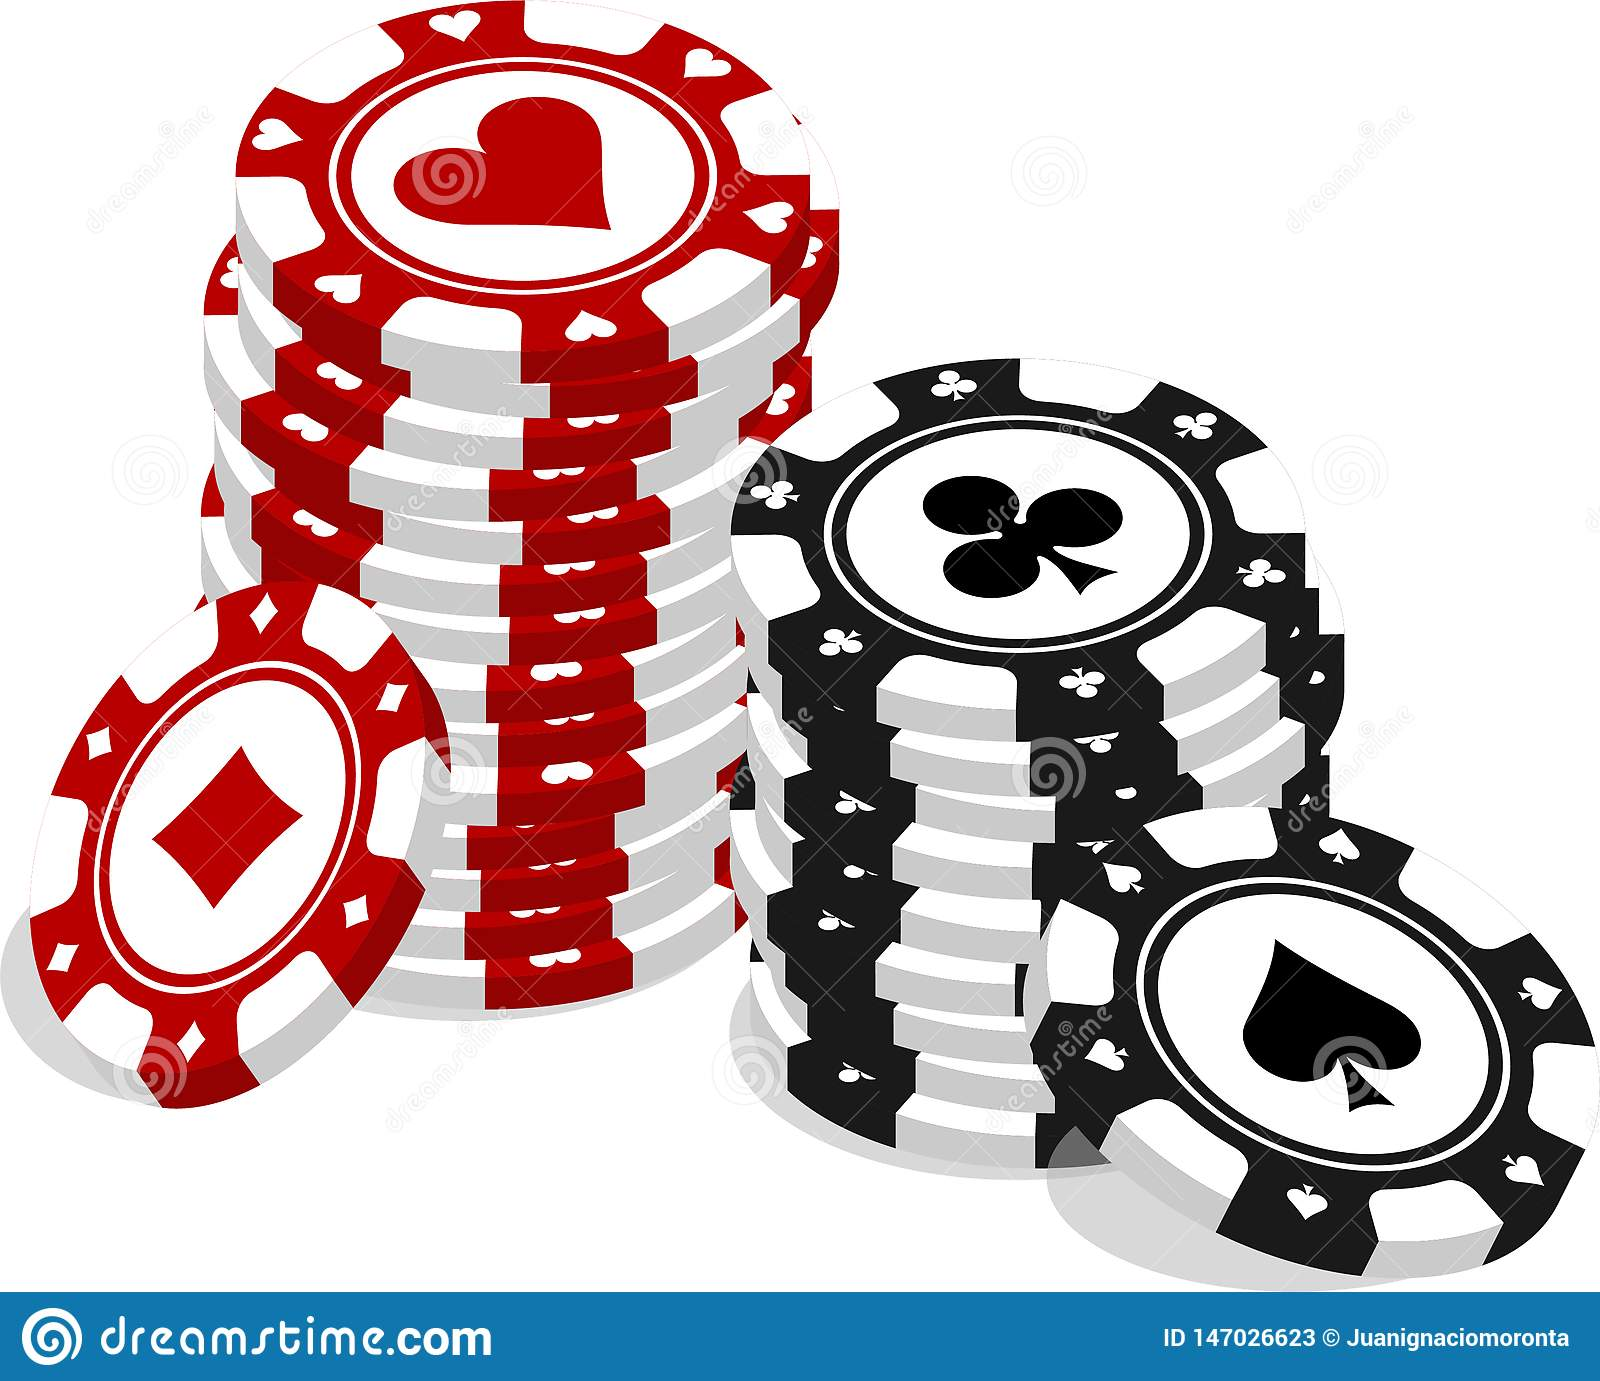 Lots of poker chips